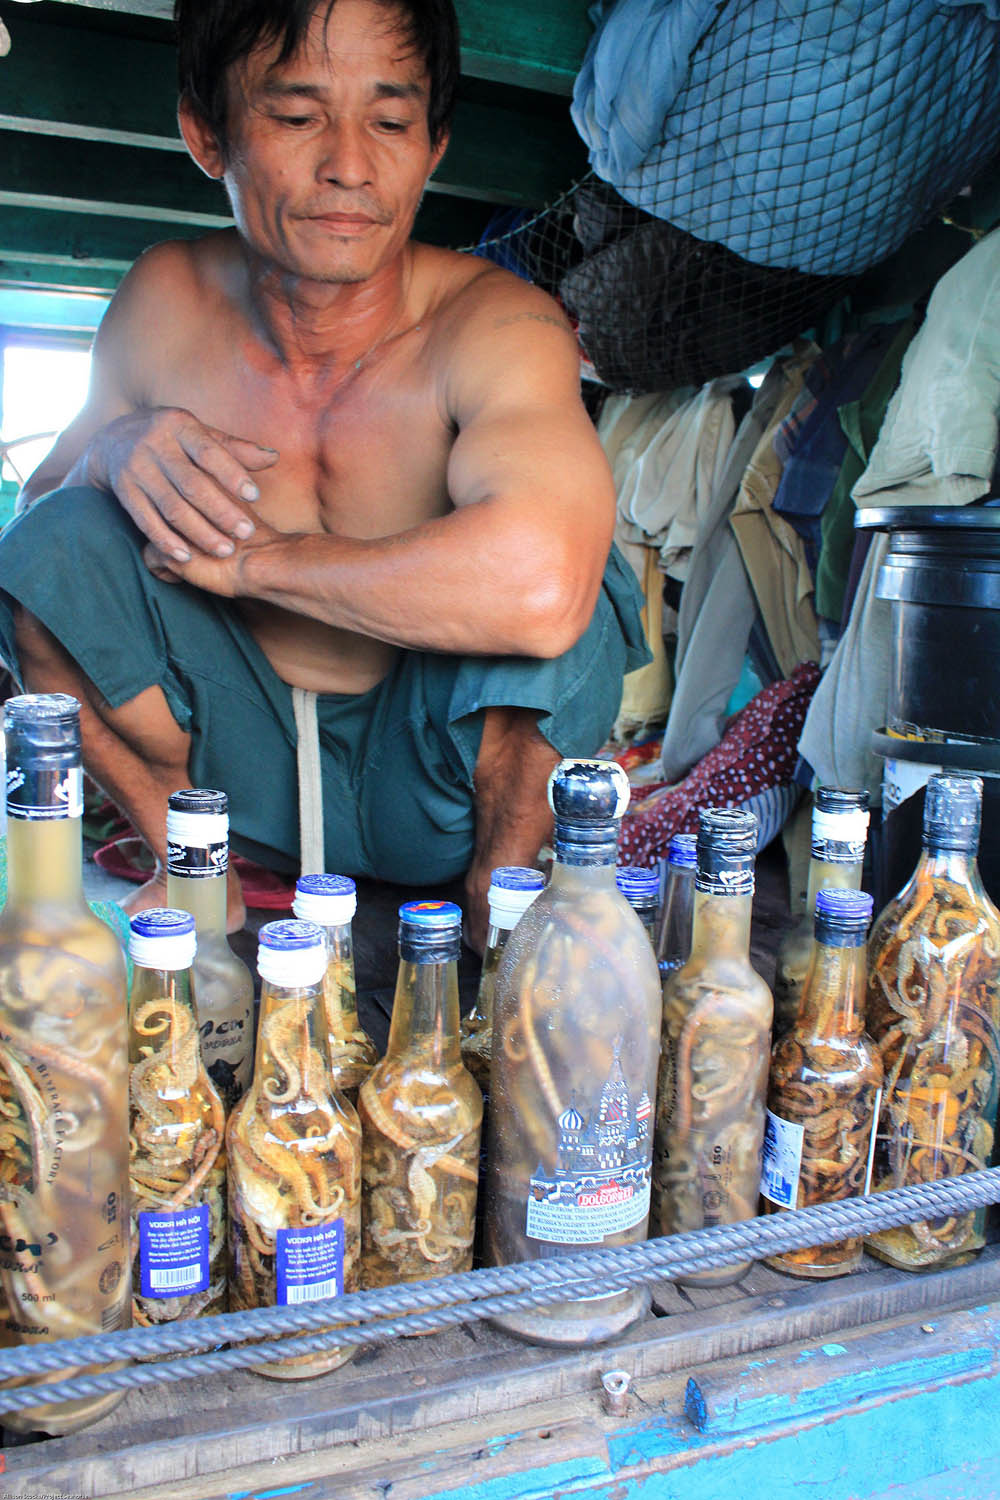 This fisher showed me his homemade seahorse tonic – these are seahorses he'd caught in the past month and bottled with alcohol. These are small seahorses that buyers weren't likely to purchase. The tonics are sold by fishers or given away as gifts (or kept for personal use). They are used to treat various ailments from kidney pain to impotence.   A. Stocks/Project Seahorse